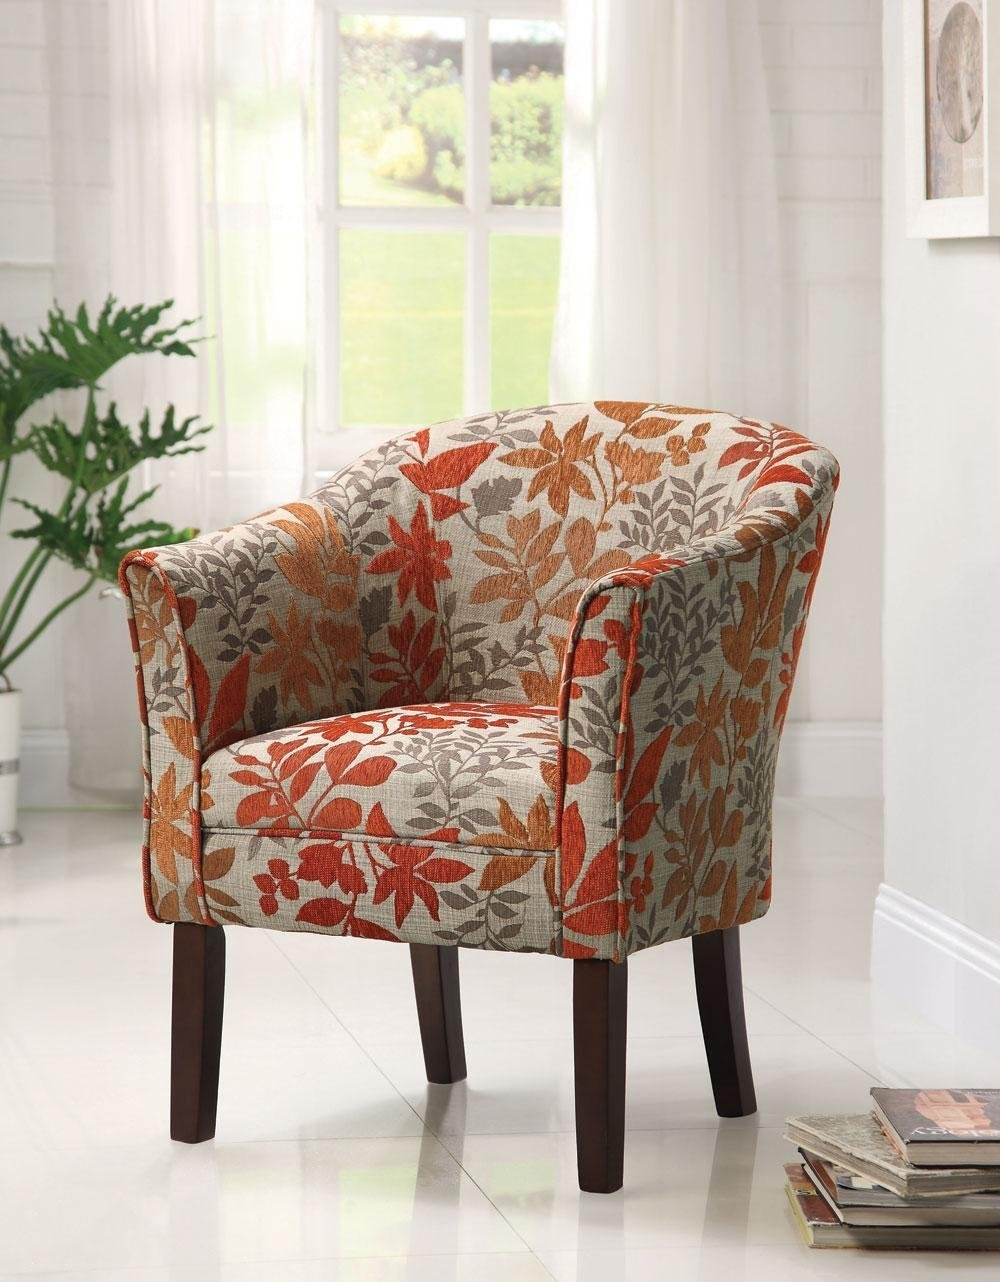 Living Room Small Chair Universalcouncil Throughout Armchairs For Small Spaces (Image 10 of 15)